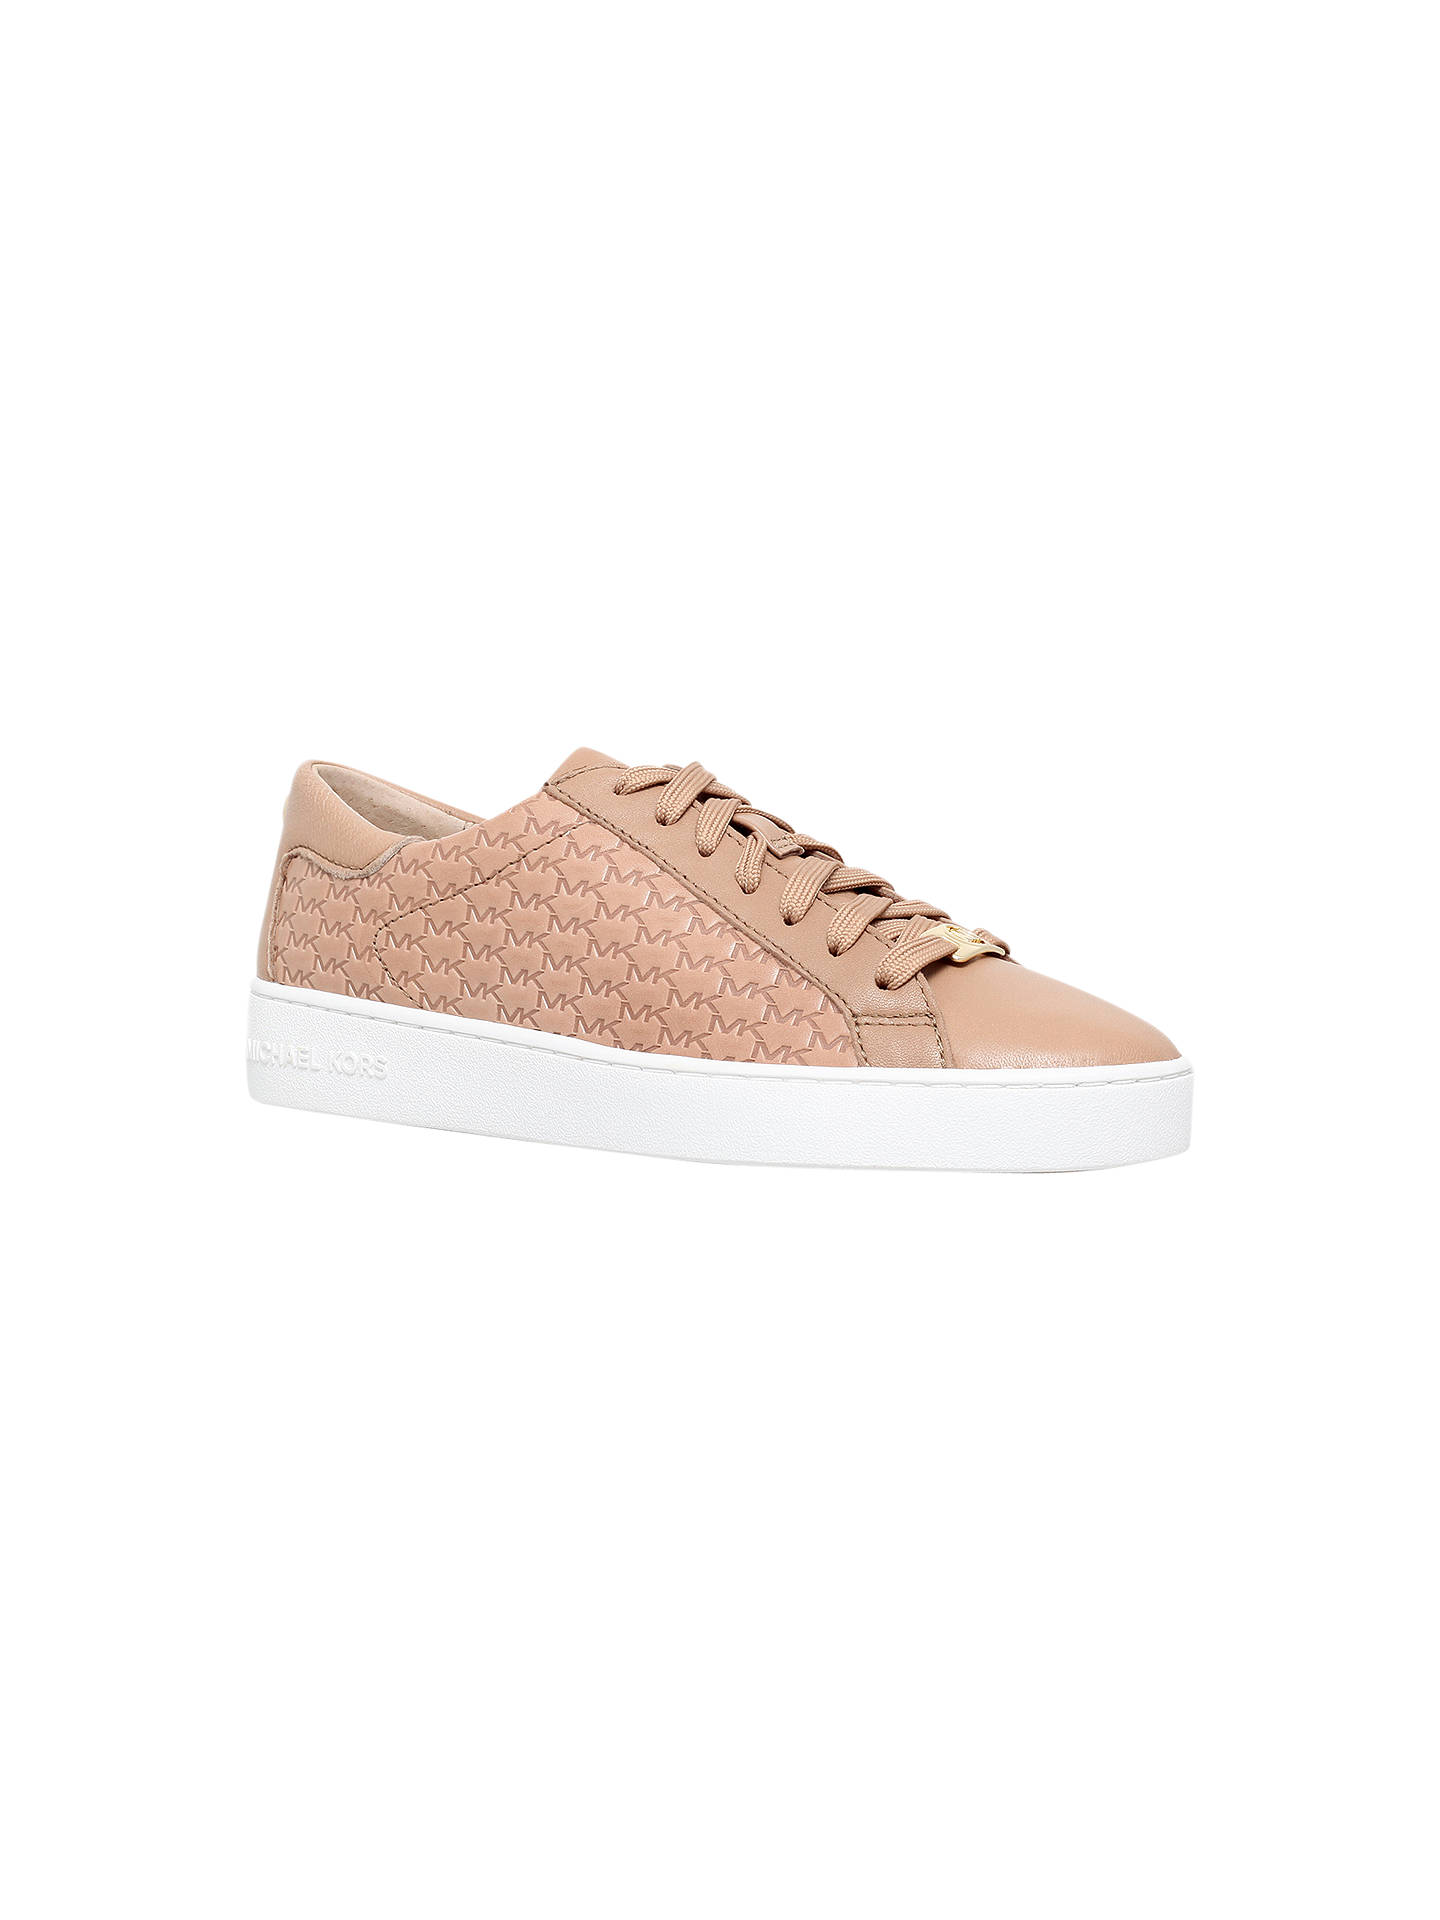 603343ab9096f MICHAEL Michael Kors Colby Lace Up Trainers at John Lewis & Partners